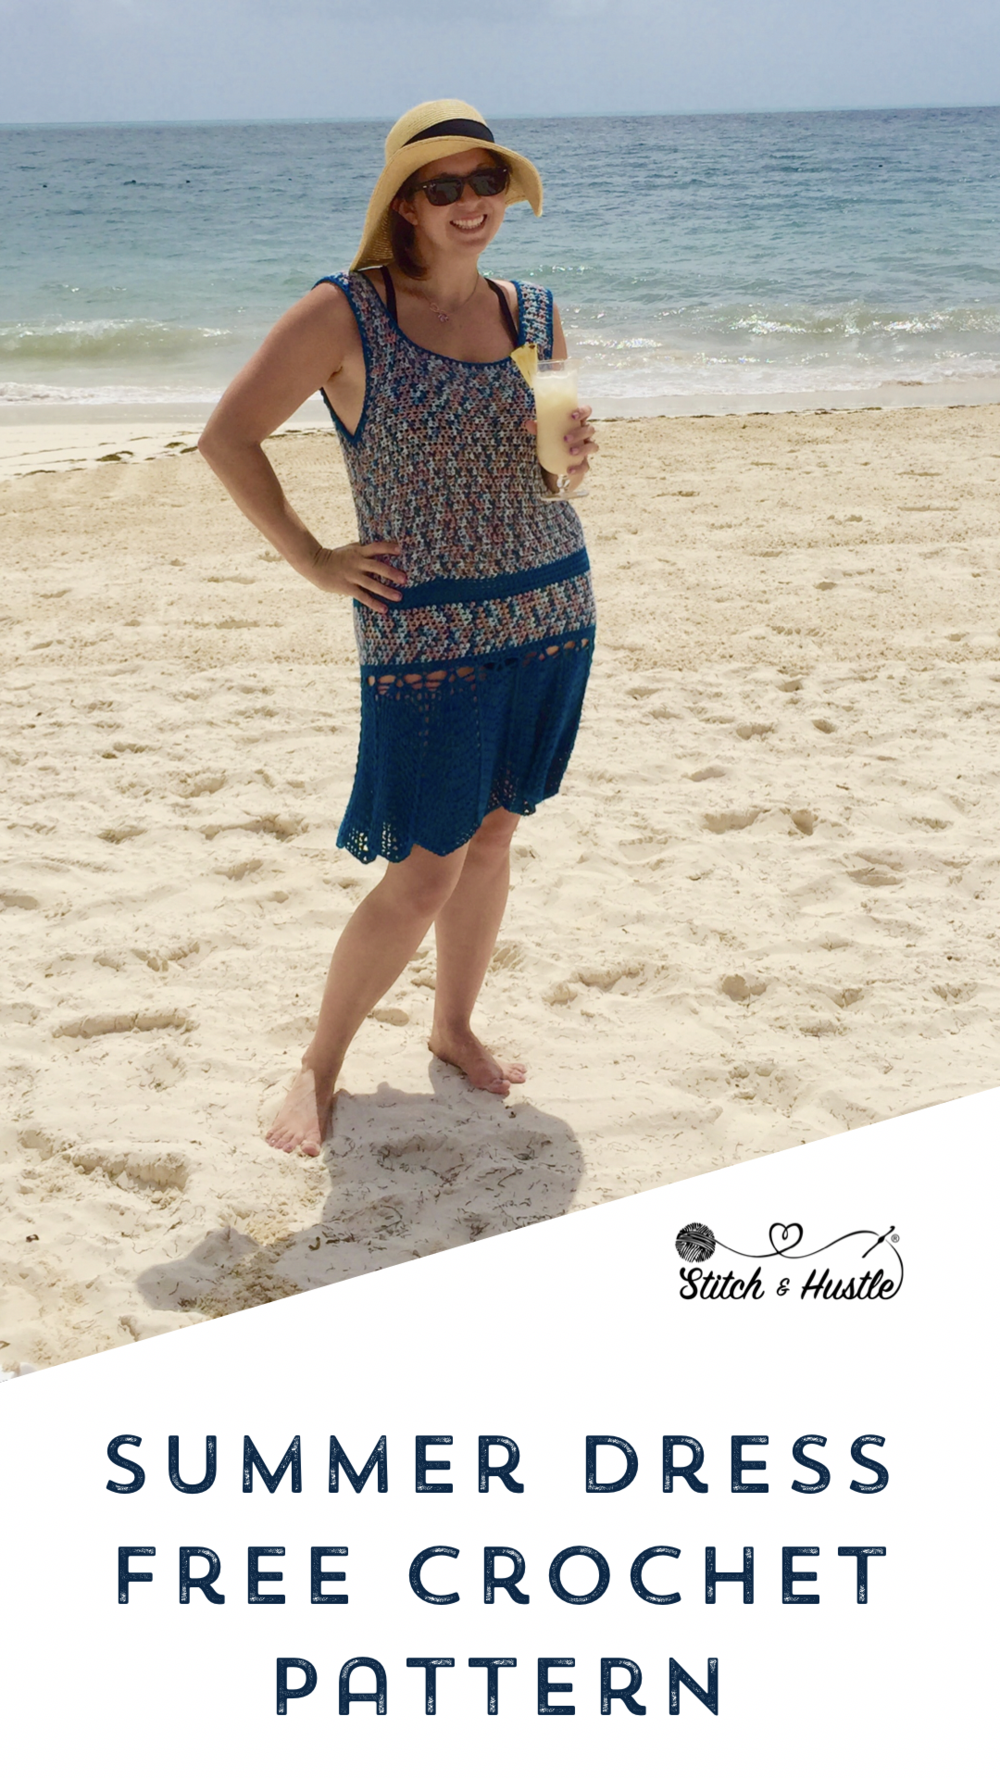 Summer_beach_dress_Free-Crochet_pattern_1.jpeg